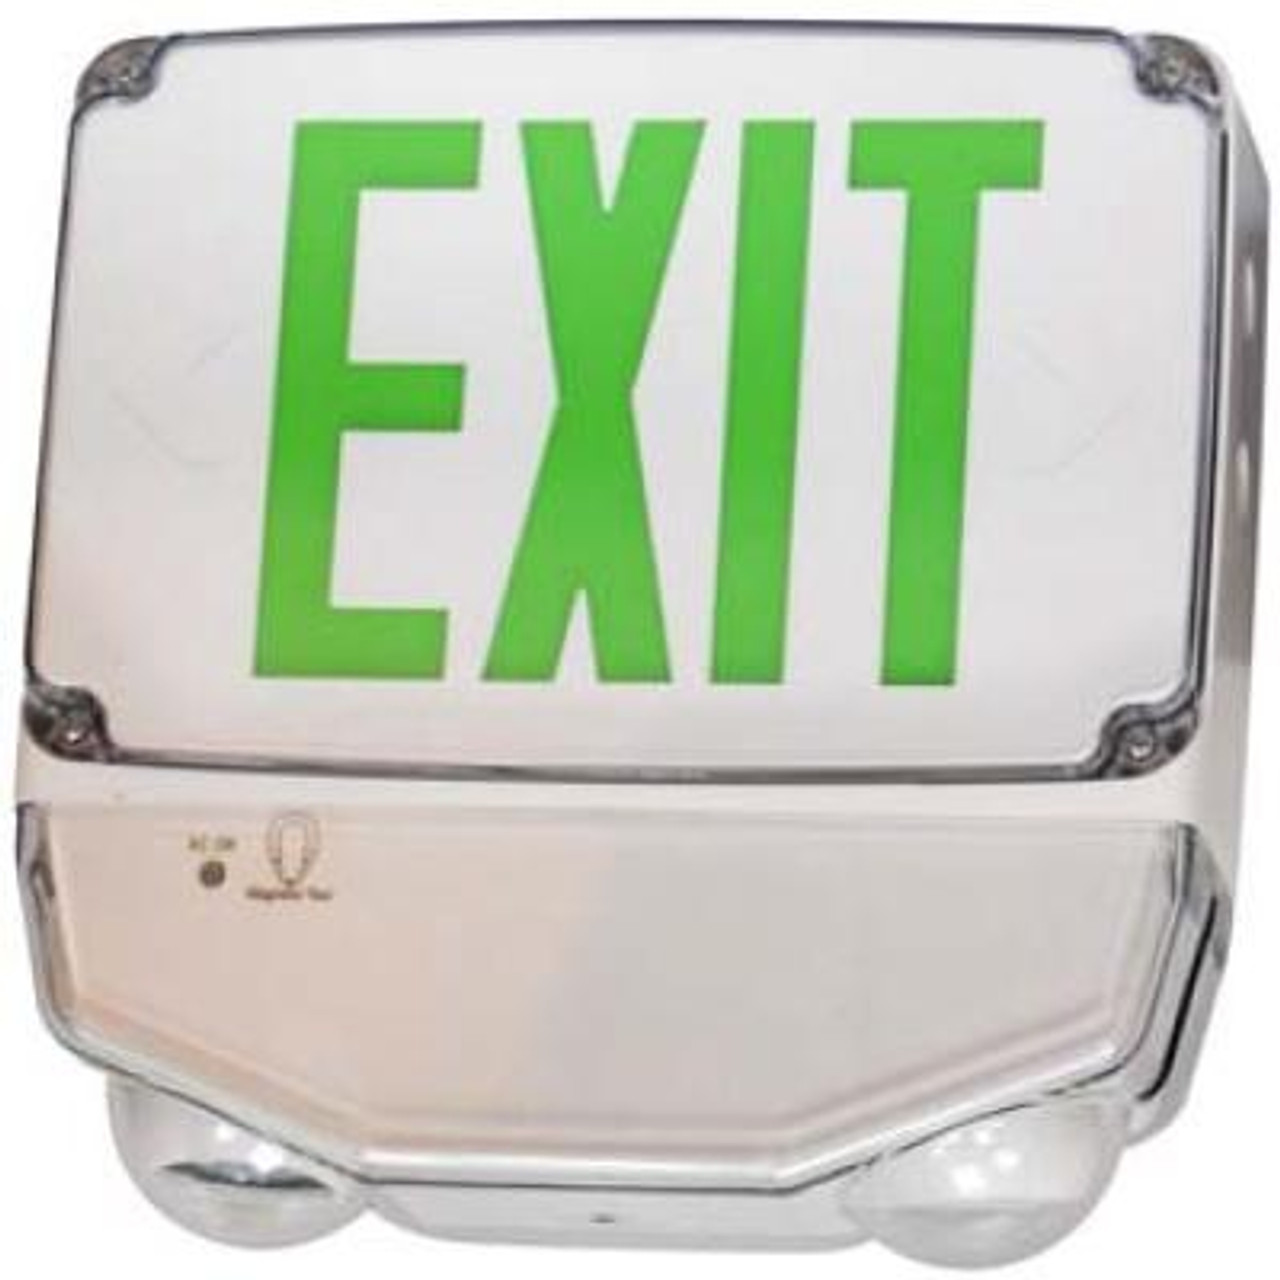 Wet Location LED Exit & Emergency Combo Green Letters